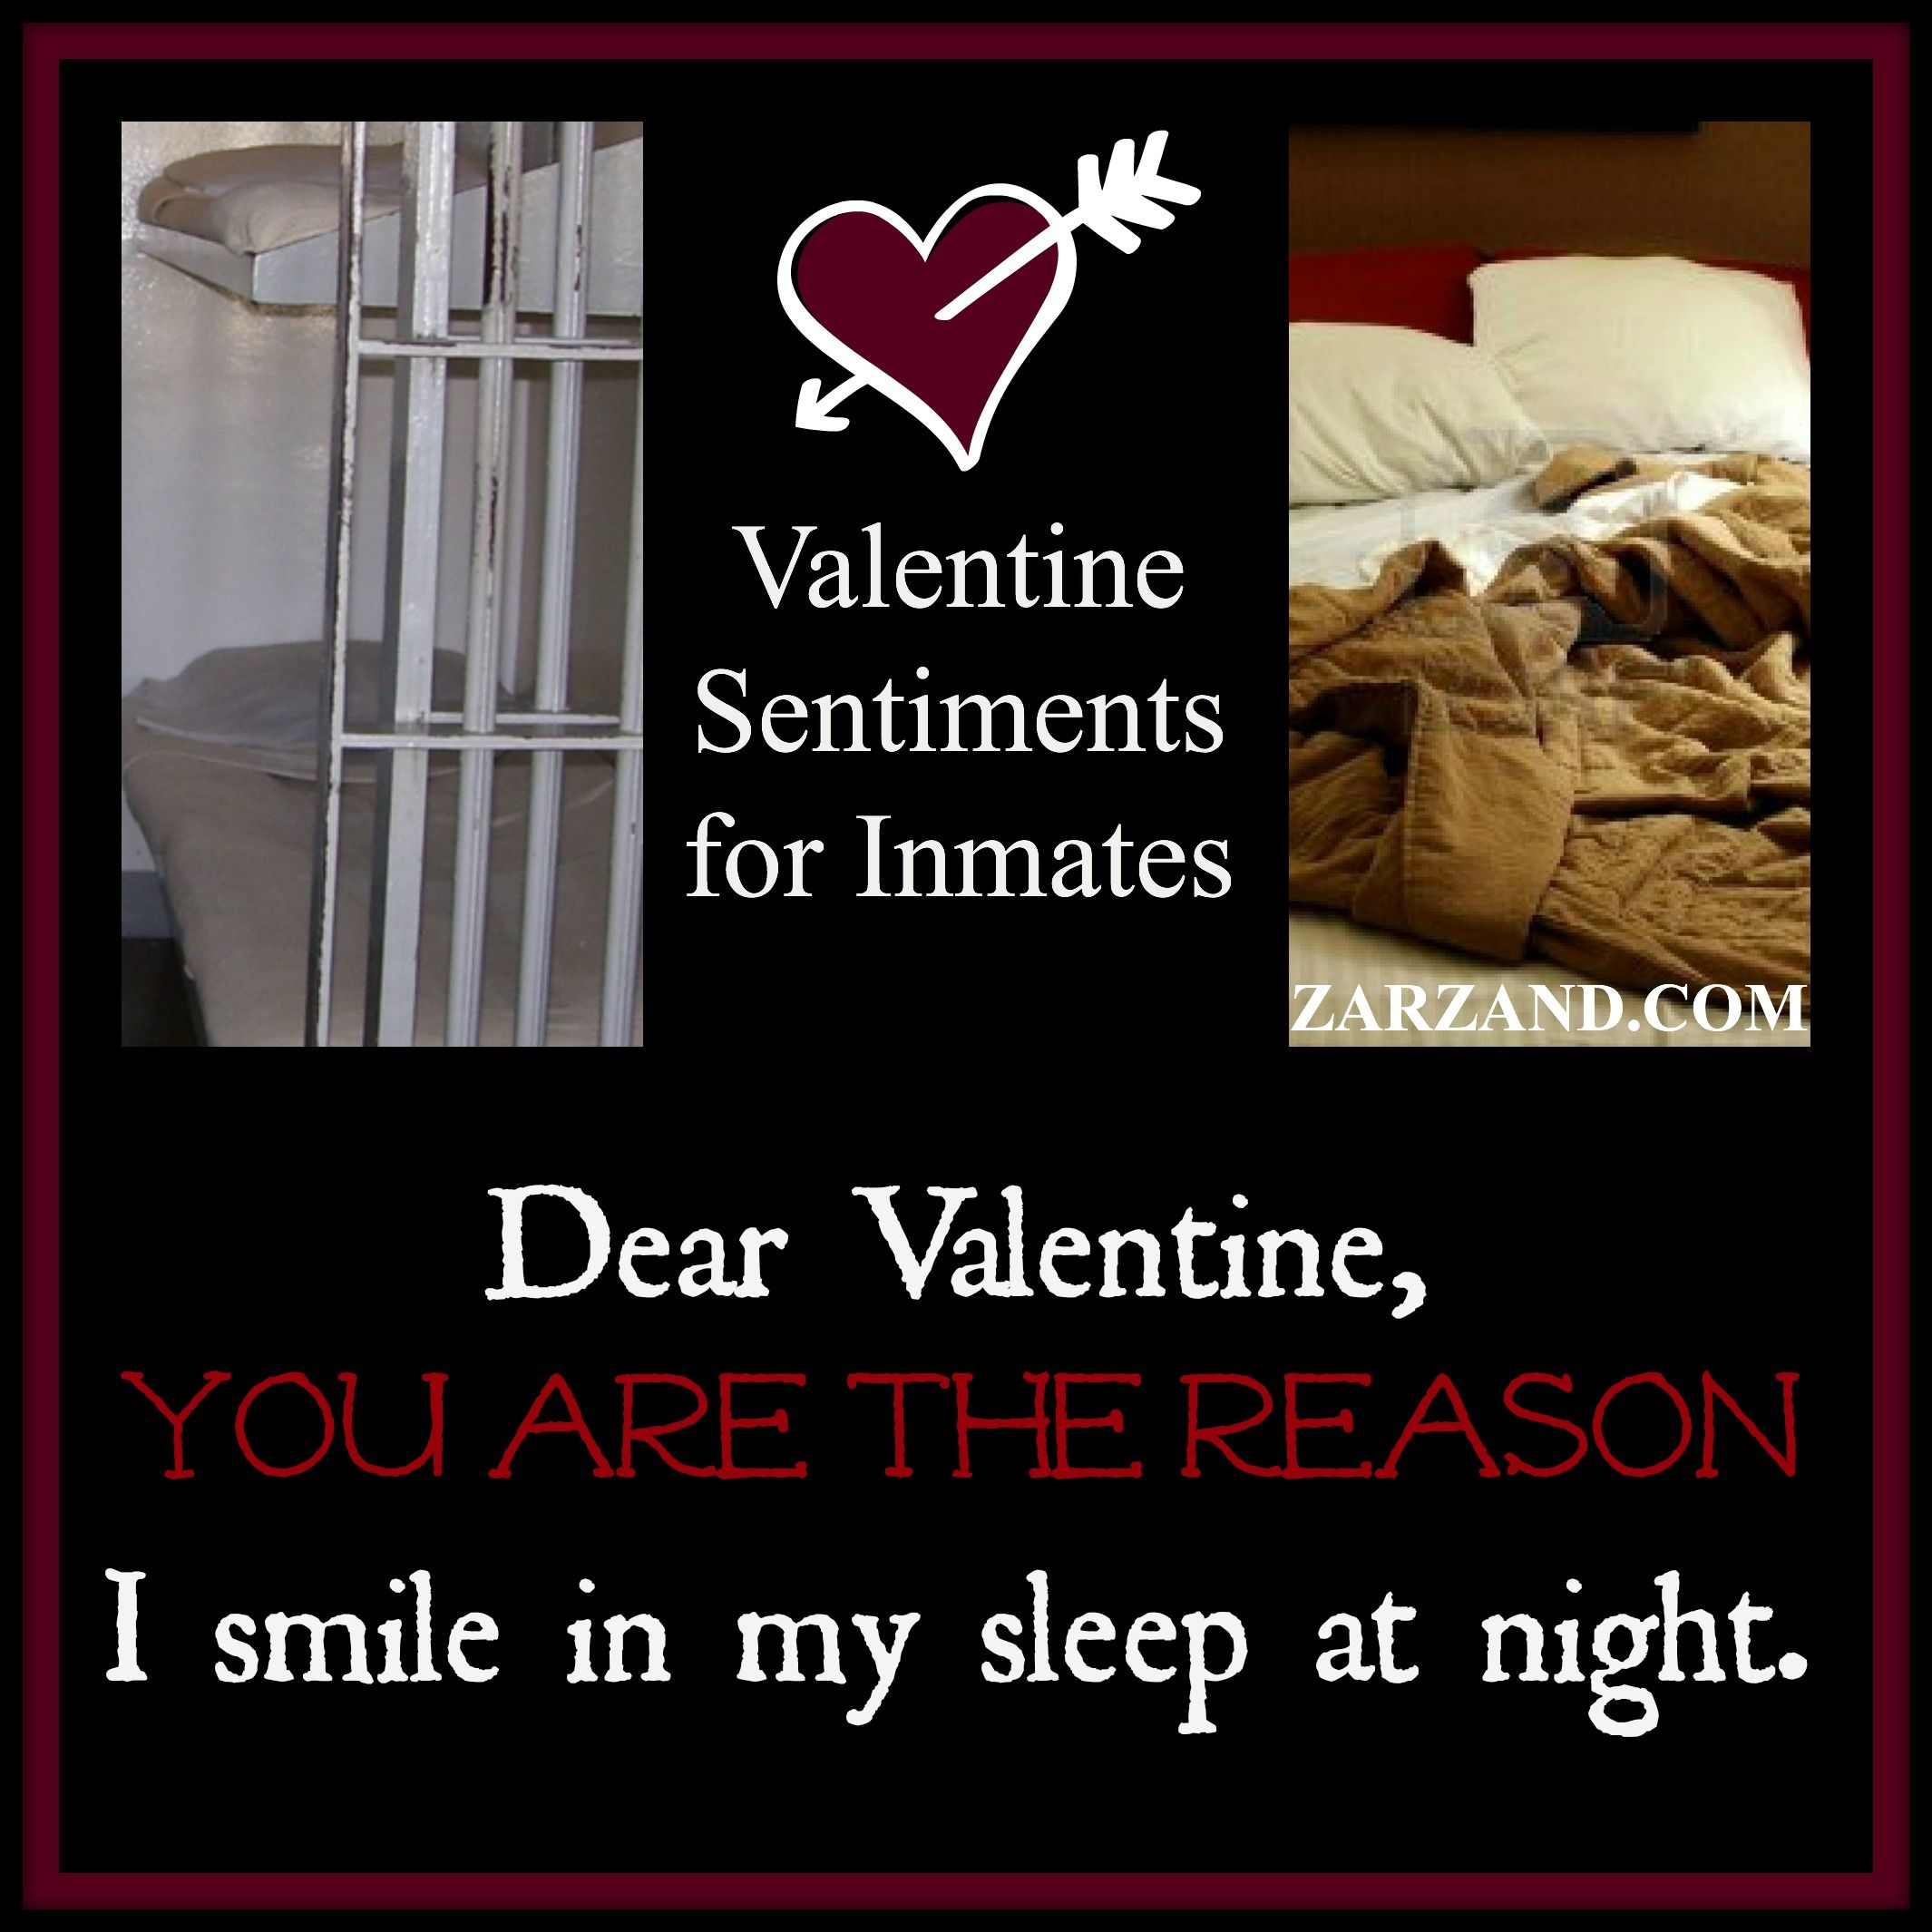 Valetinesday With Your Inmate Zarzand Our Greeting Card